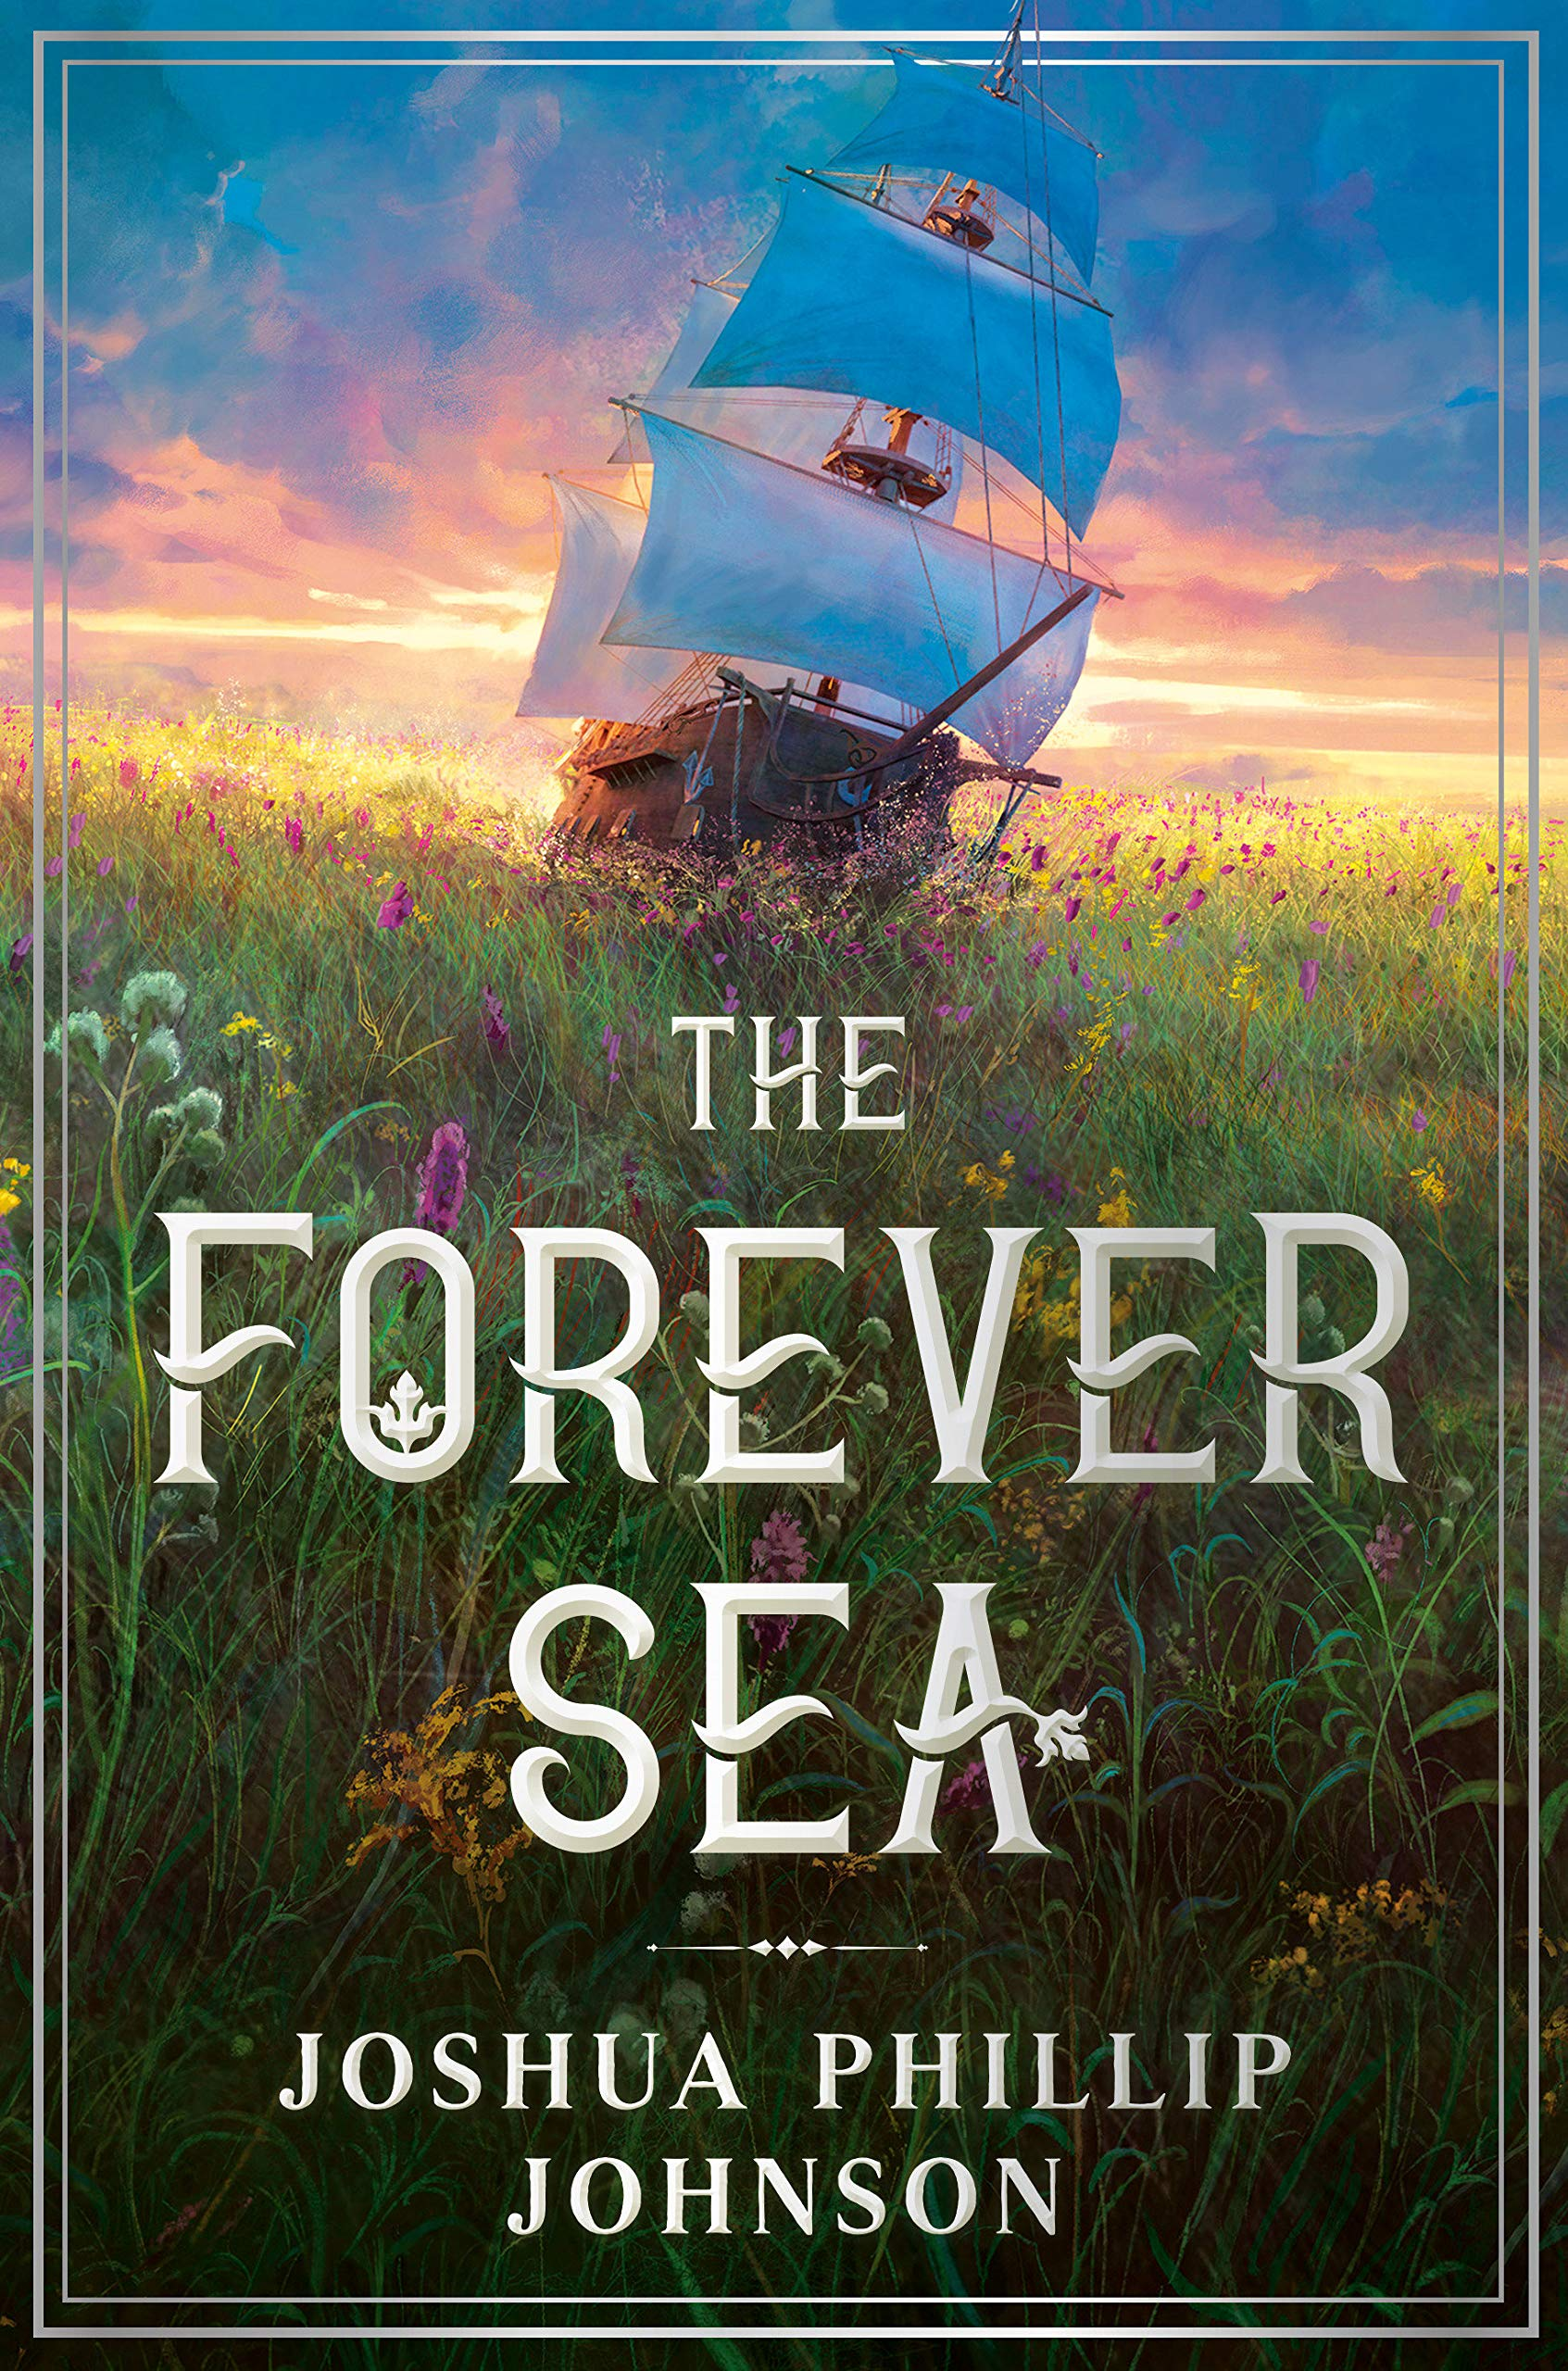 The Forever Sea: Johnson, Joshua Phillip: 9780756417031: Amazon.com: Books